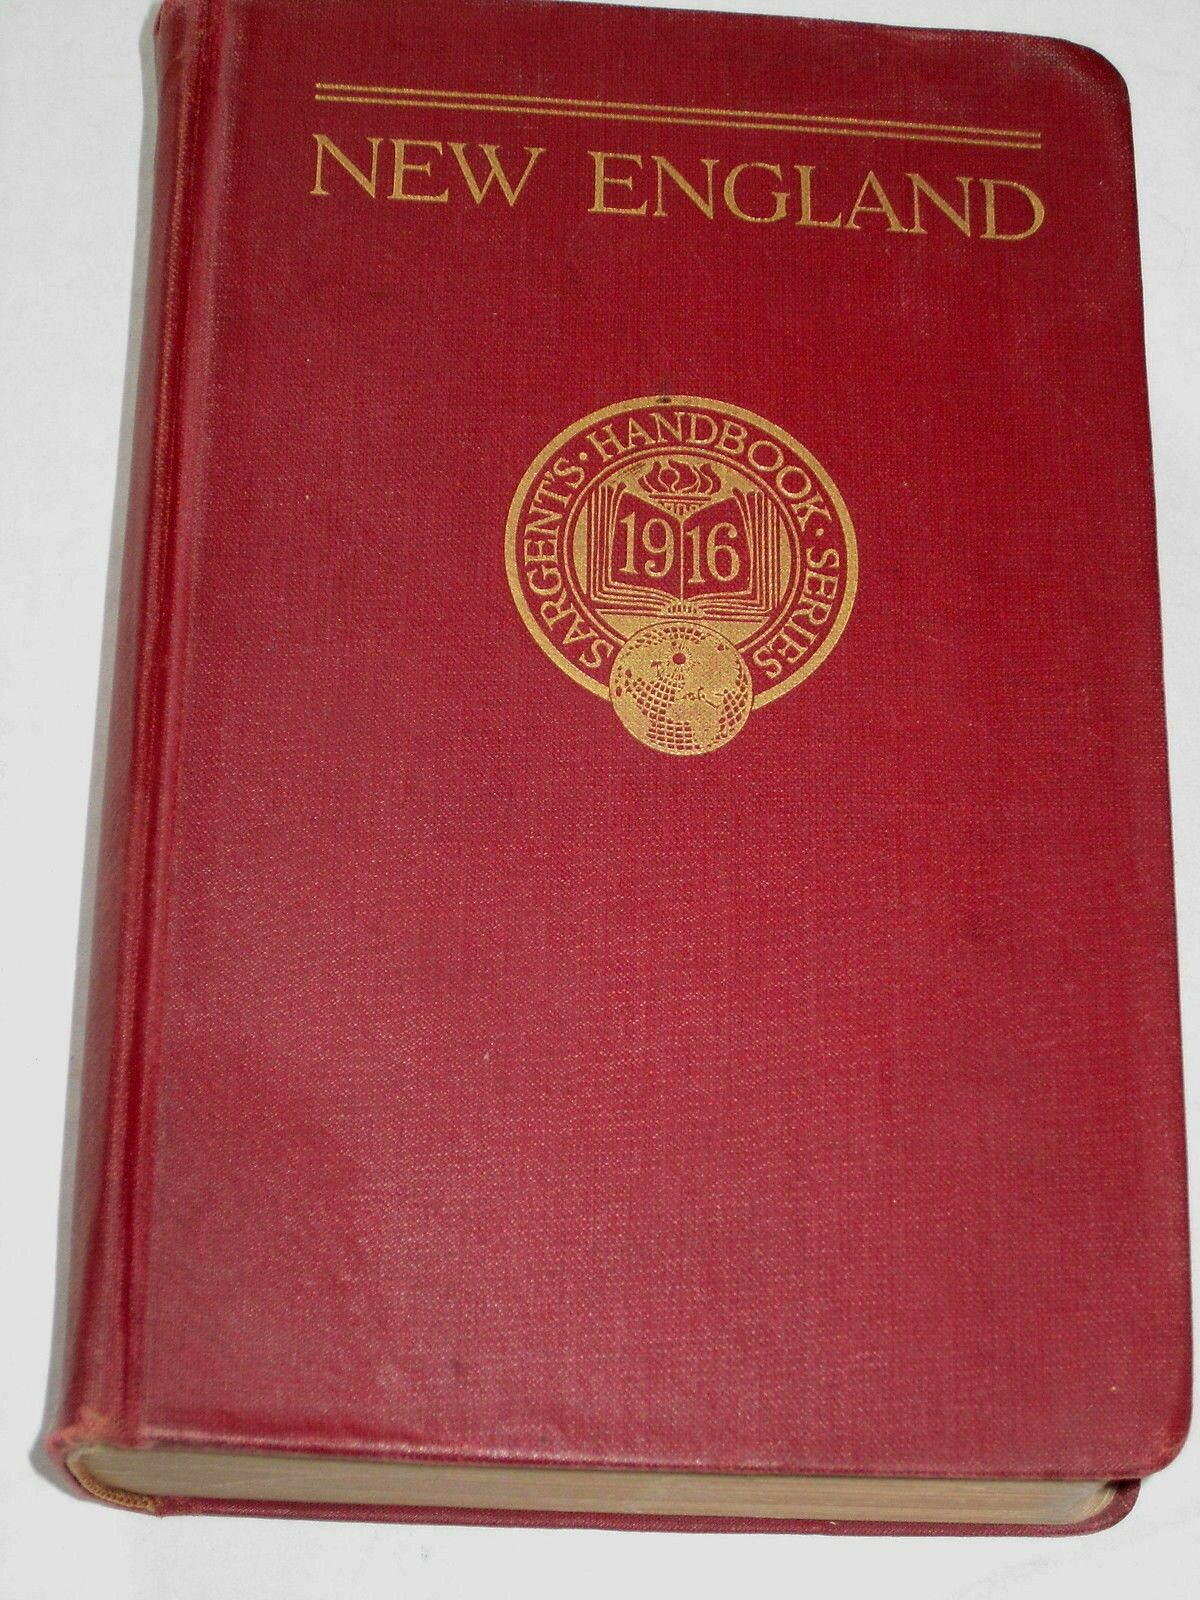 1916 sargent s handbook of new england 1st edition americana travel book